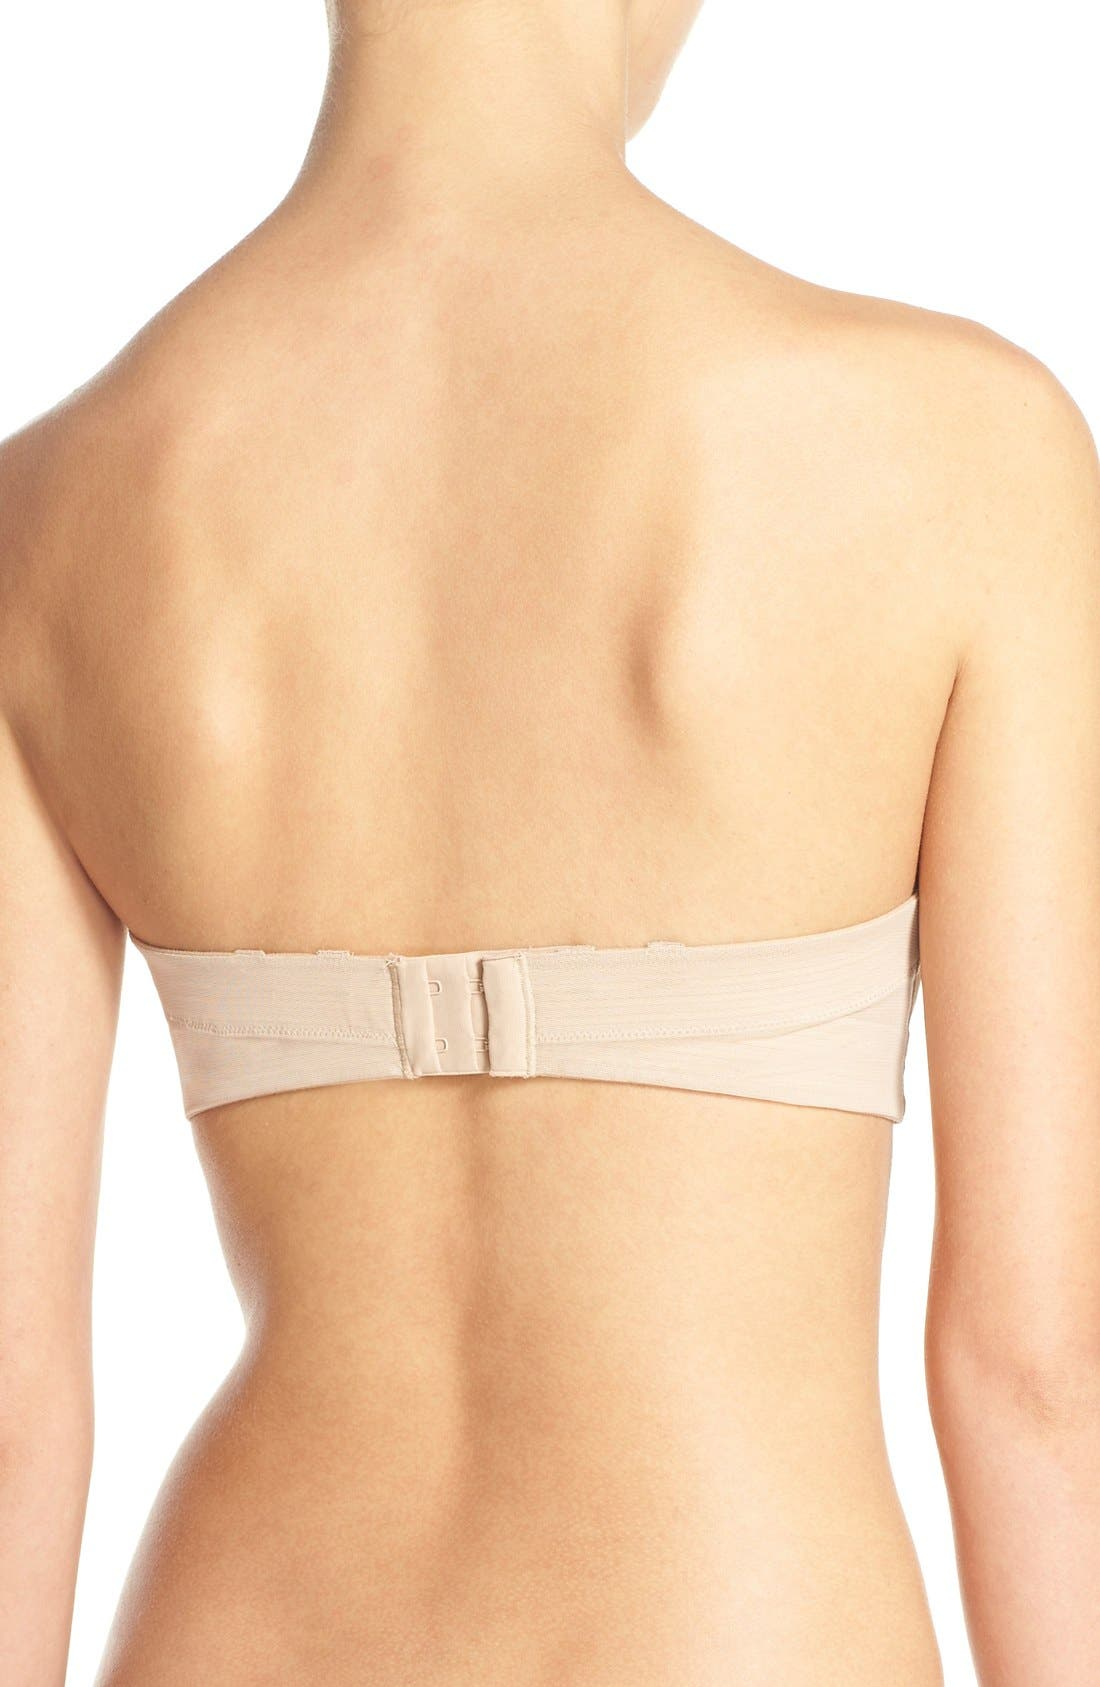 'Vous et Moi' Silicone-Free Strapless Underwire Bra,                             Alternate thumbnail 3, color,                             Ultra Nude